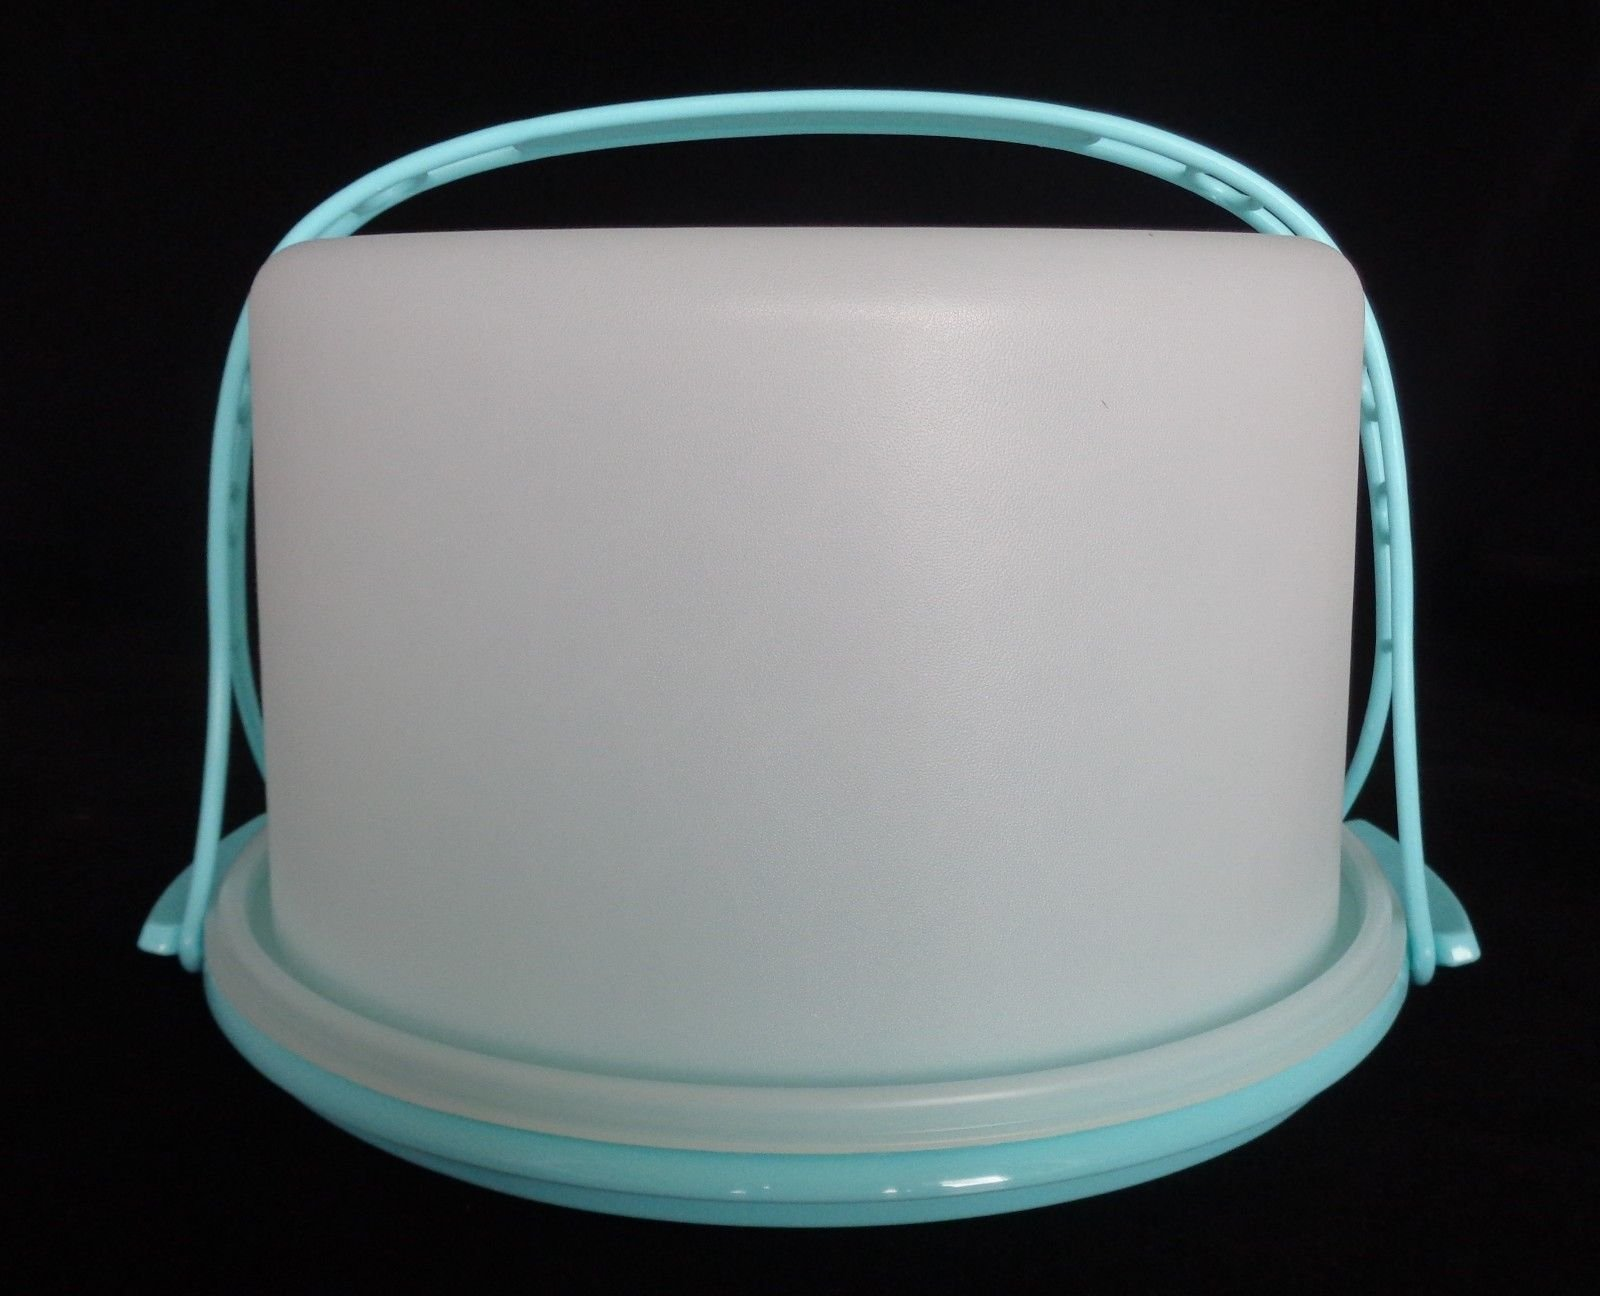 Tupperware Cake Taker 10'' Round Vintage-Style Classic Carrier with Carry Handle in Blue Mint